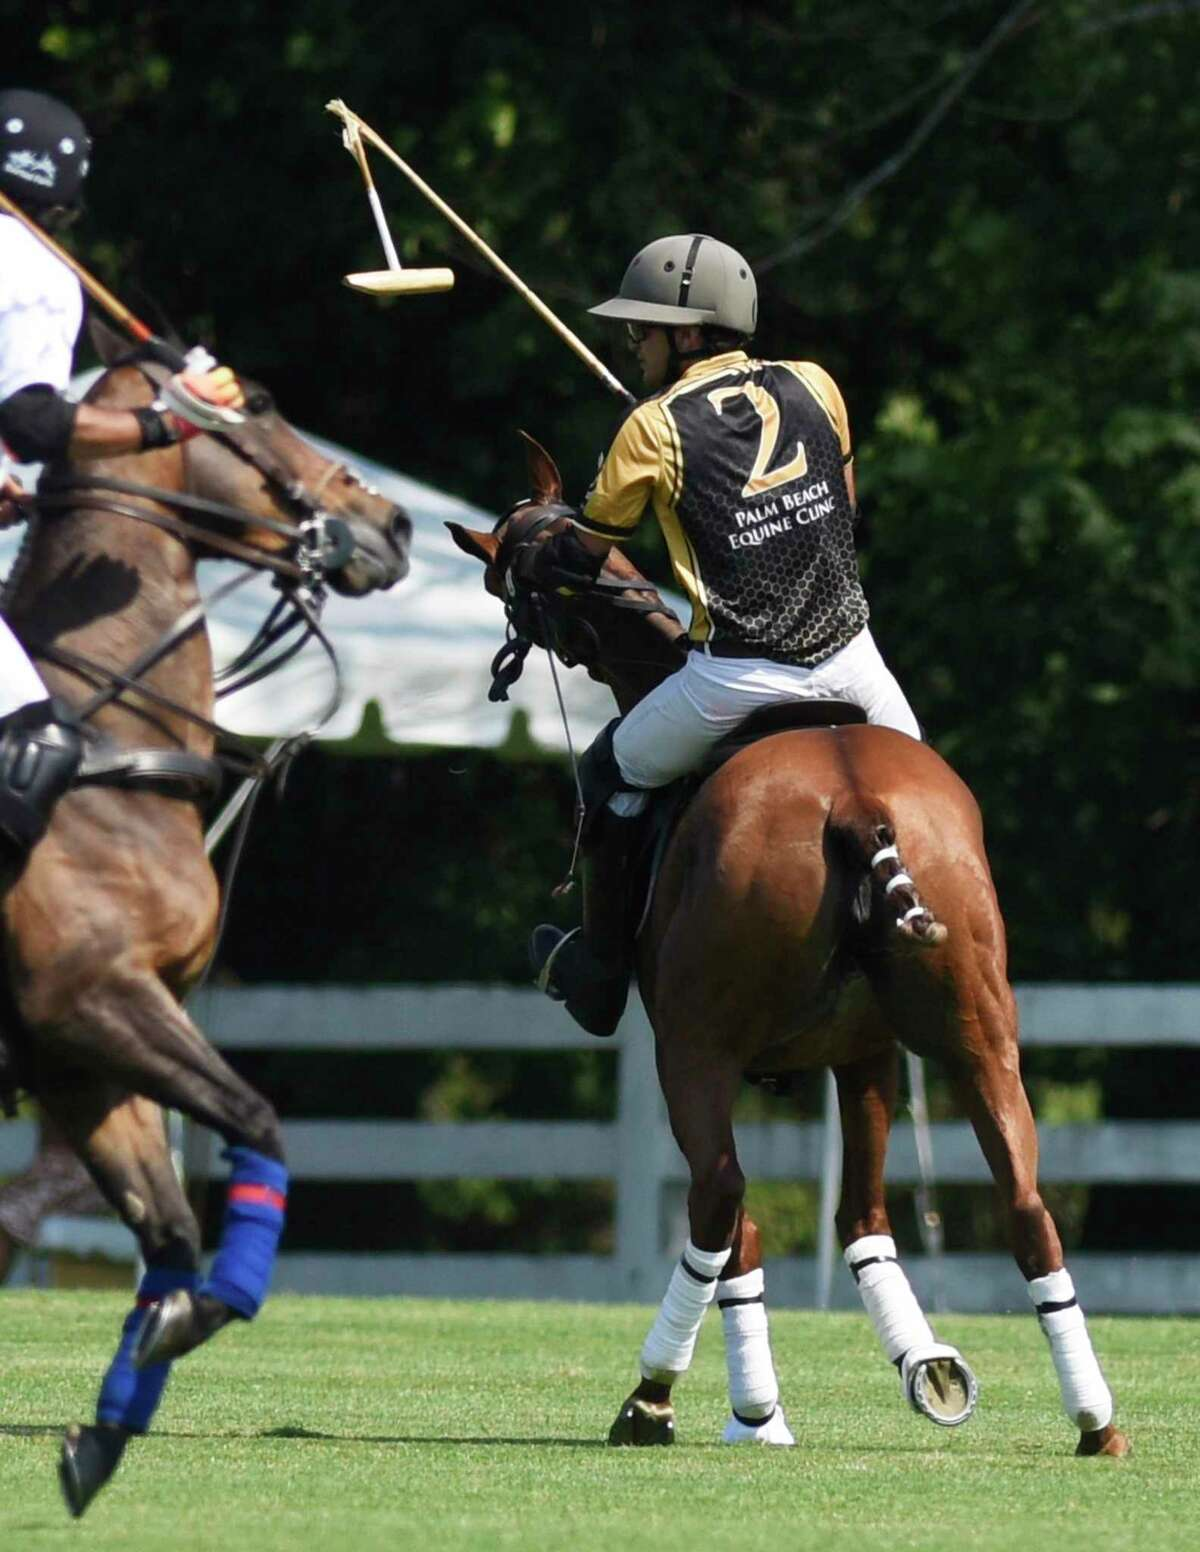 Palm Beach Equine's Constancio Caset has his mallet broken during the season-opening match at the Greenwich Polo Club in Greenwich, Conn. Sunday, June 6, 2021. Level Select CBD played Palm Beach Equine in the East Coast Bronze Cup 2021 match before a sold out crowd.